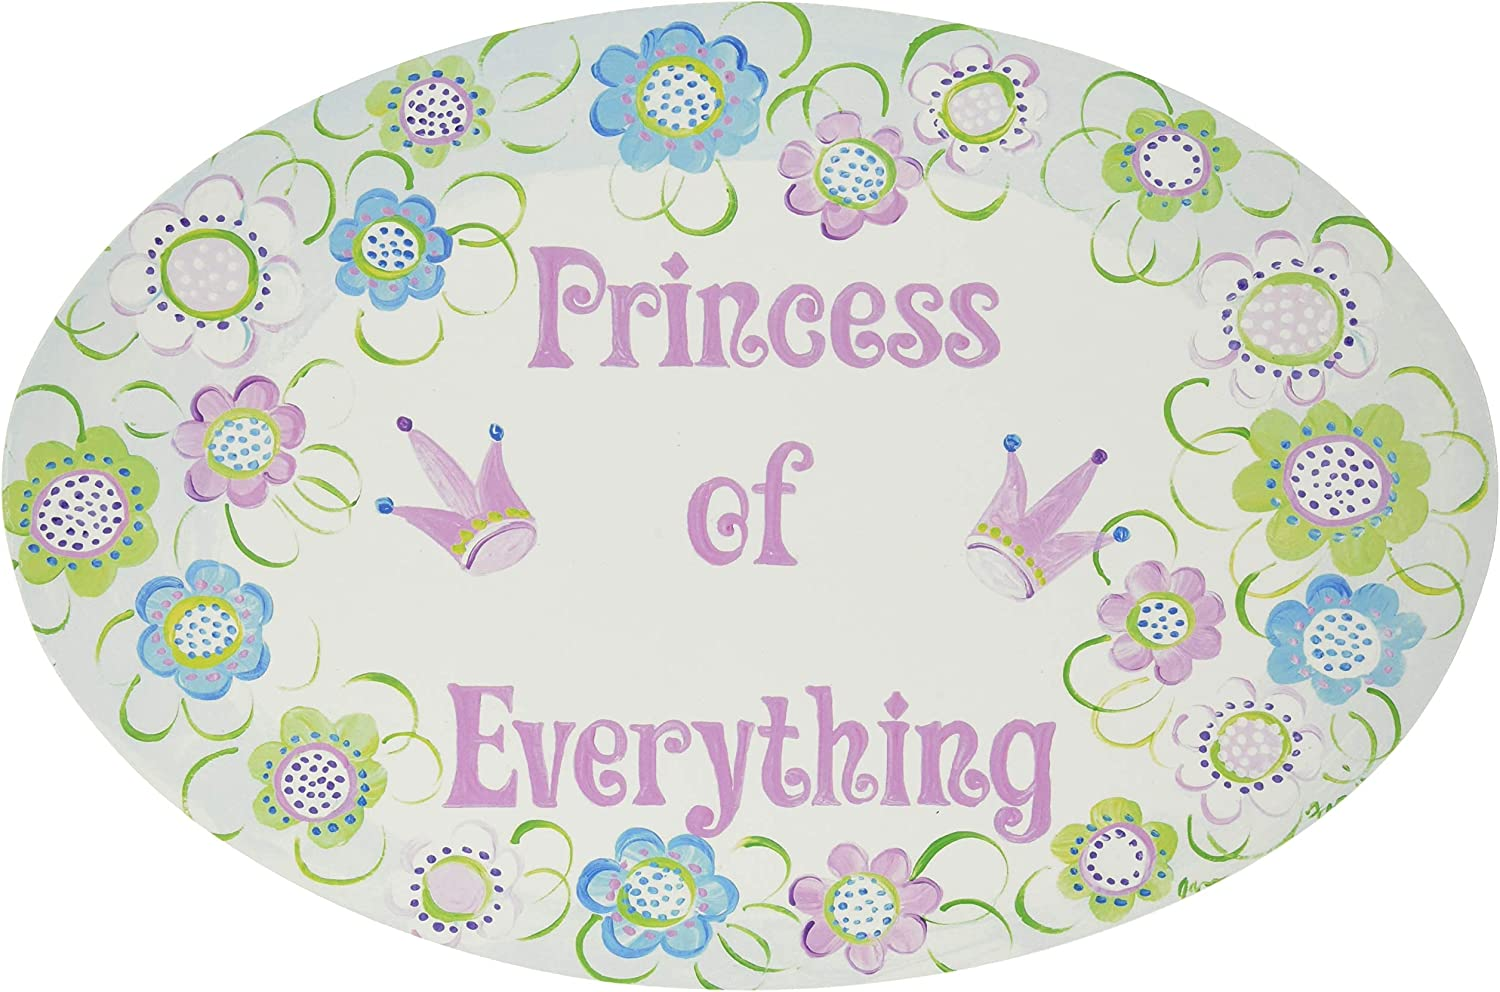 The Kids Room by Stupell Princess of Everything with Flowers Oval Wall Plaque